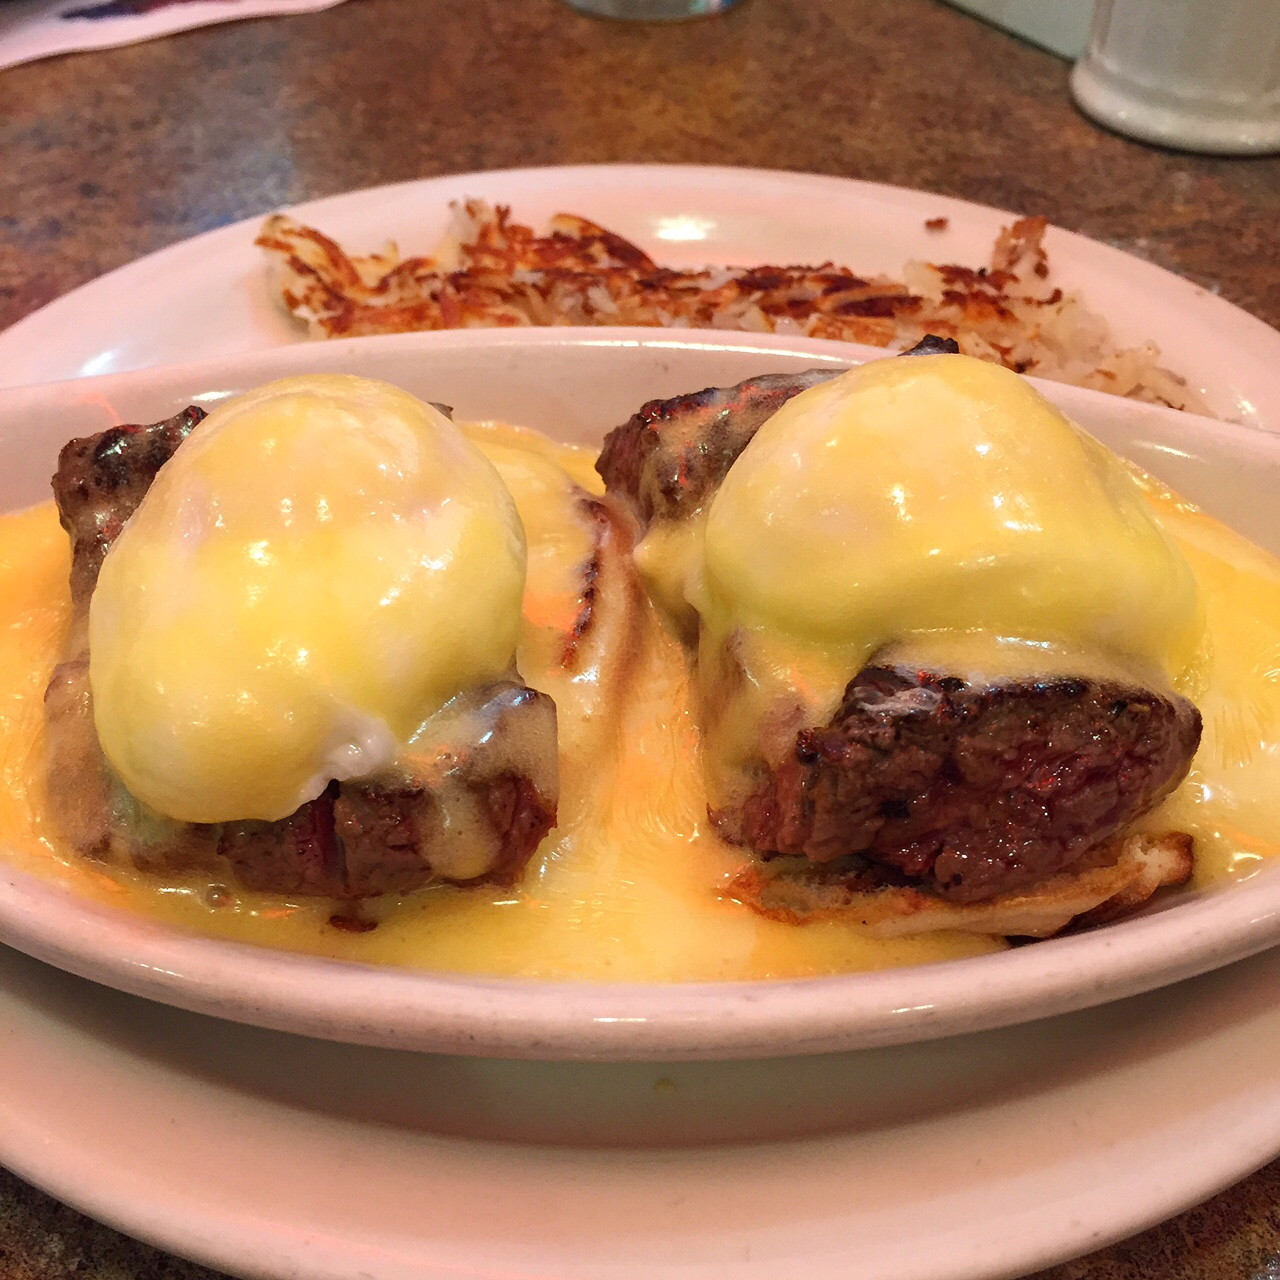 The steak eggs Benedict at the Delray Beach location